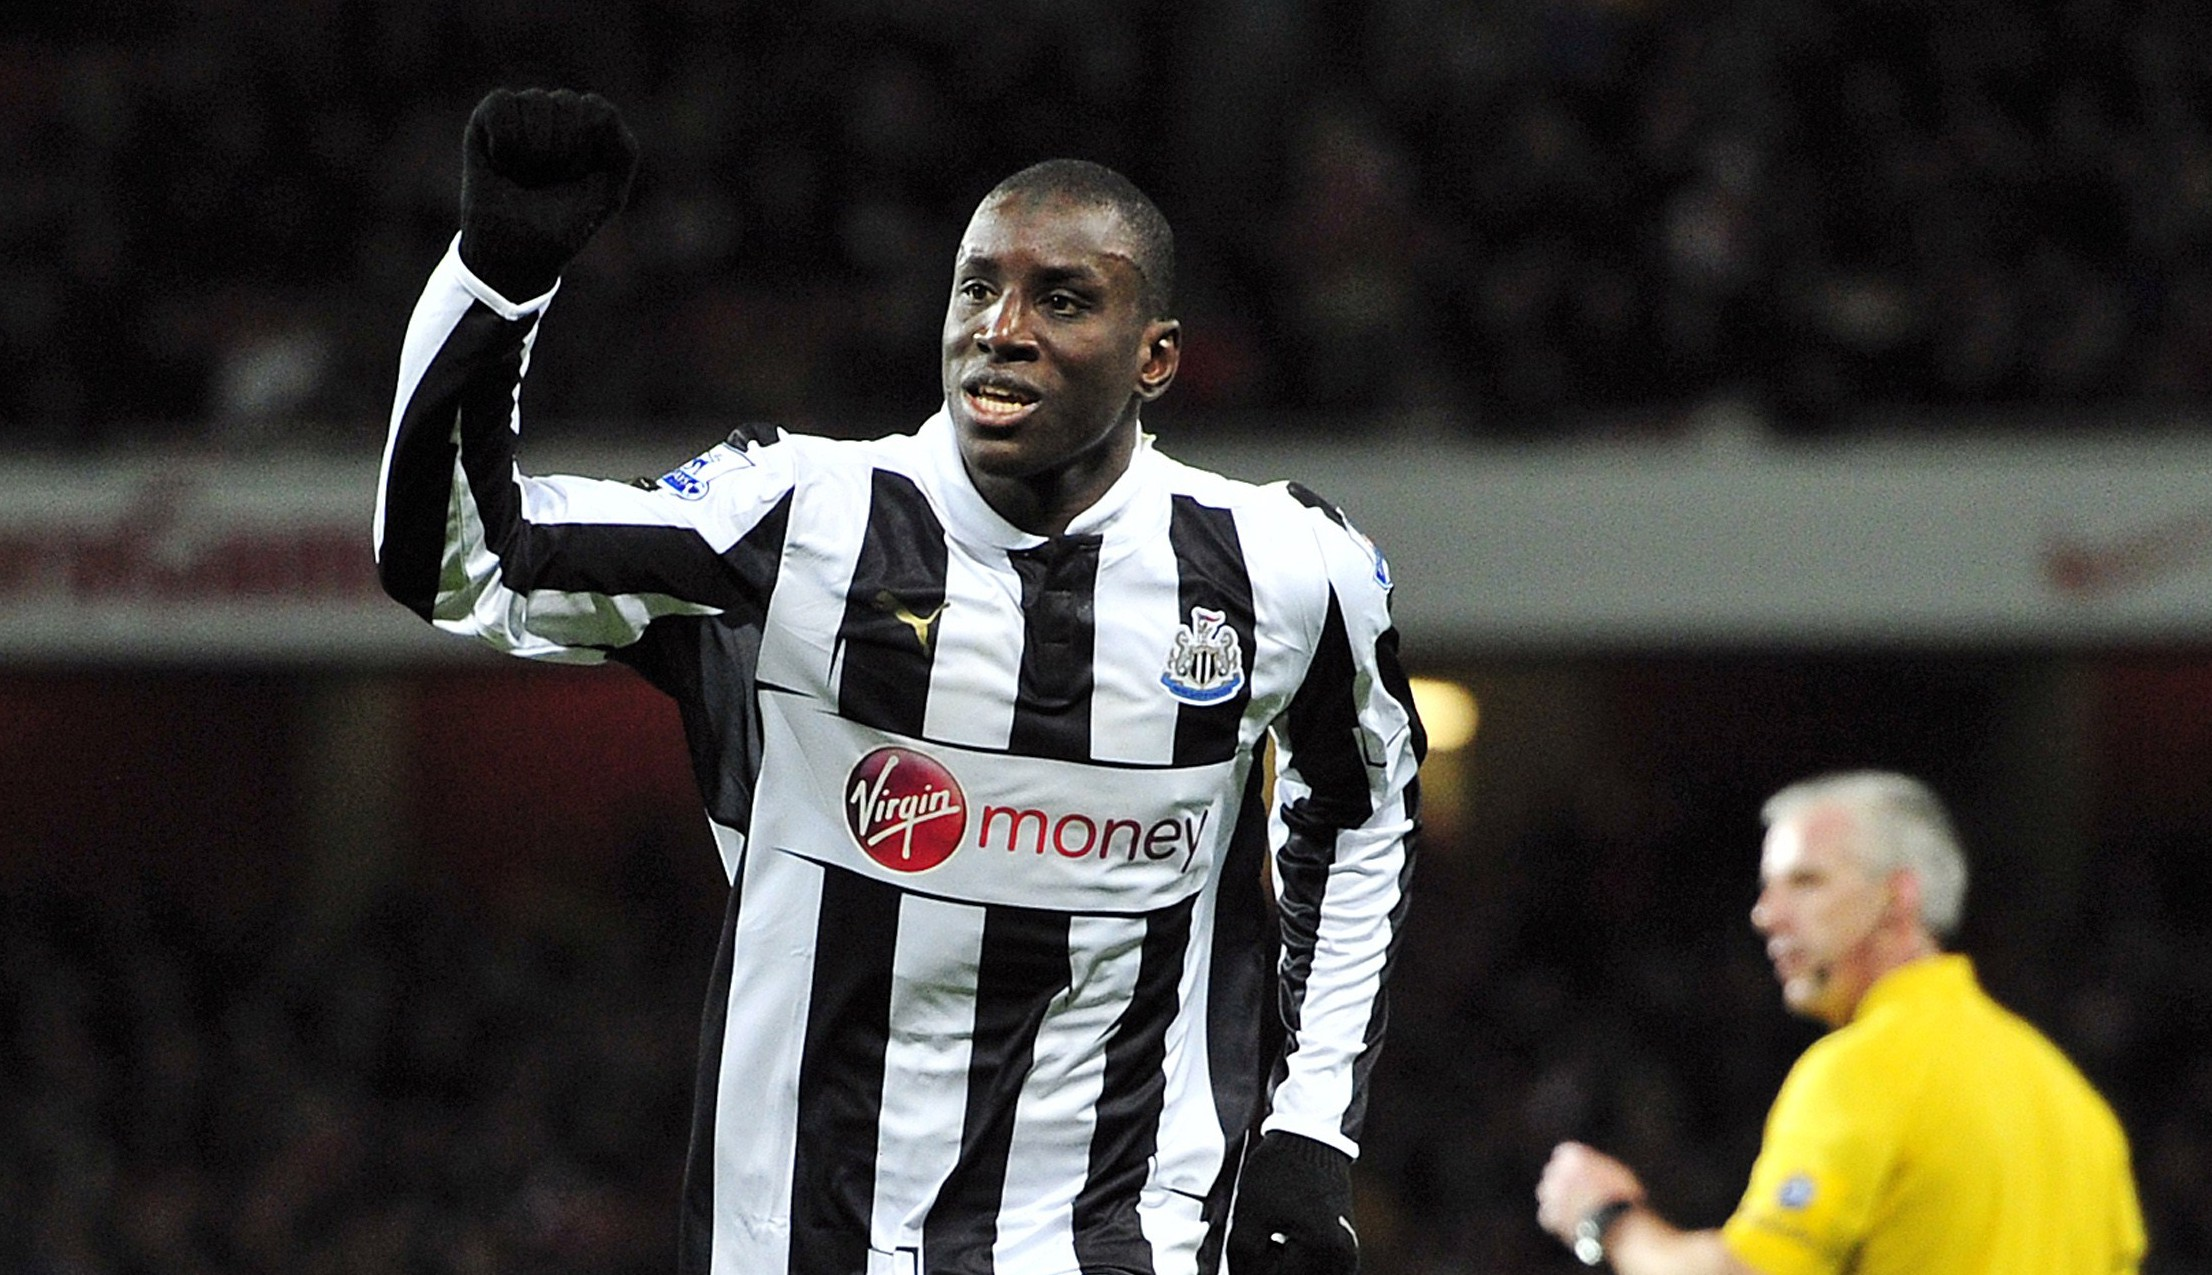 Demba Ba has completed his move to Chelsea (Picture: Getty)